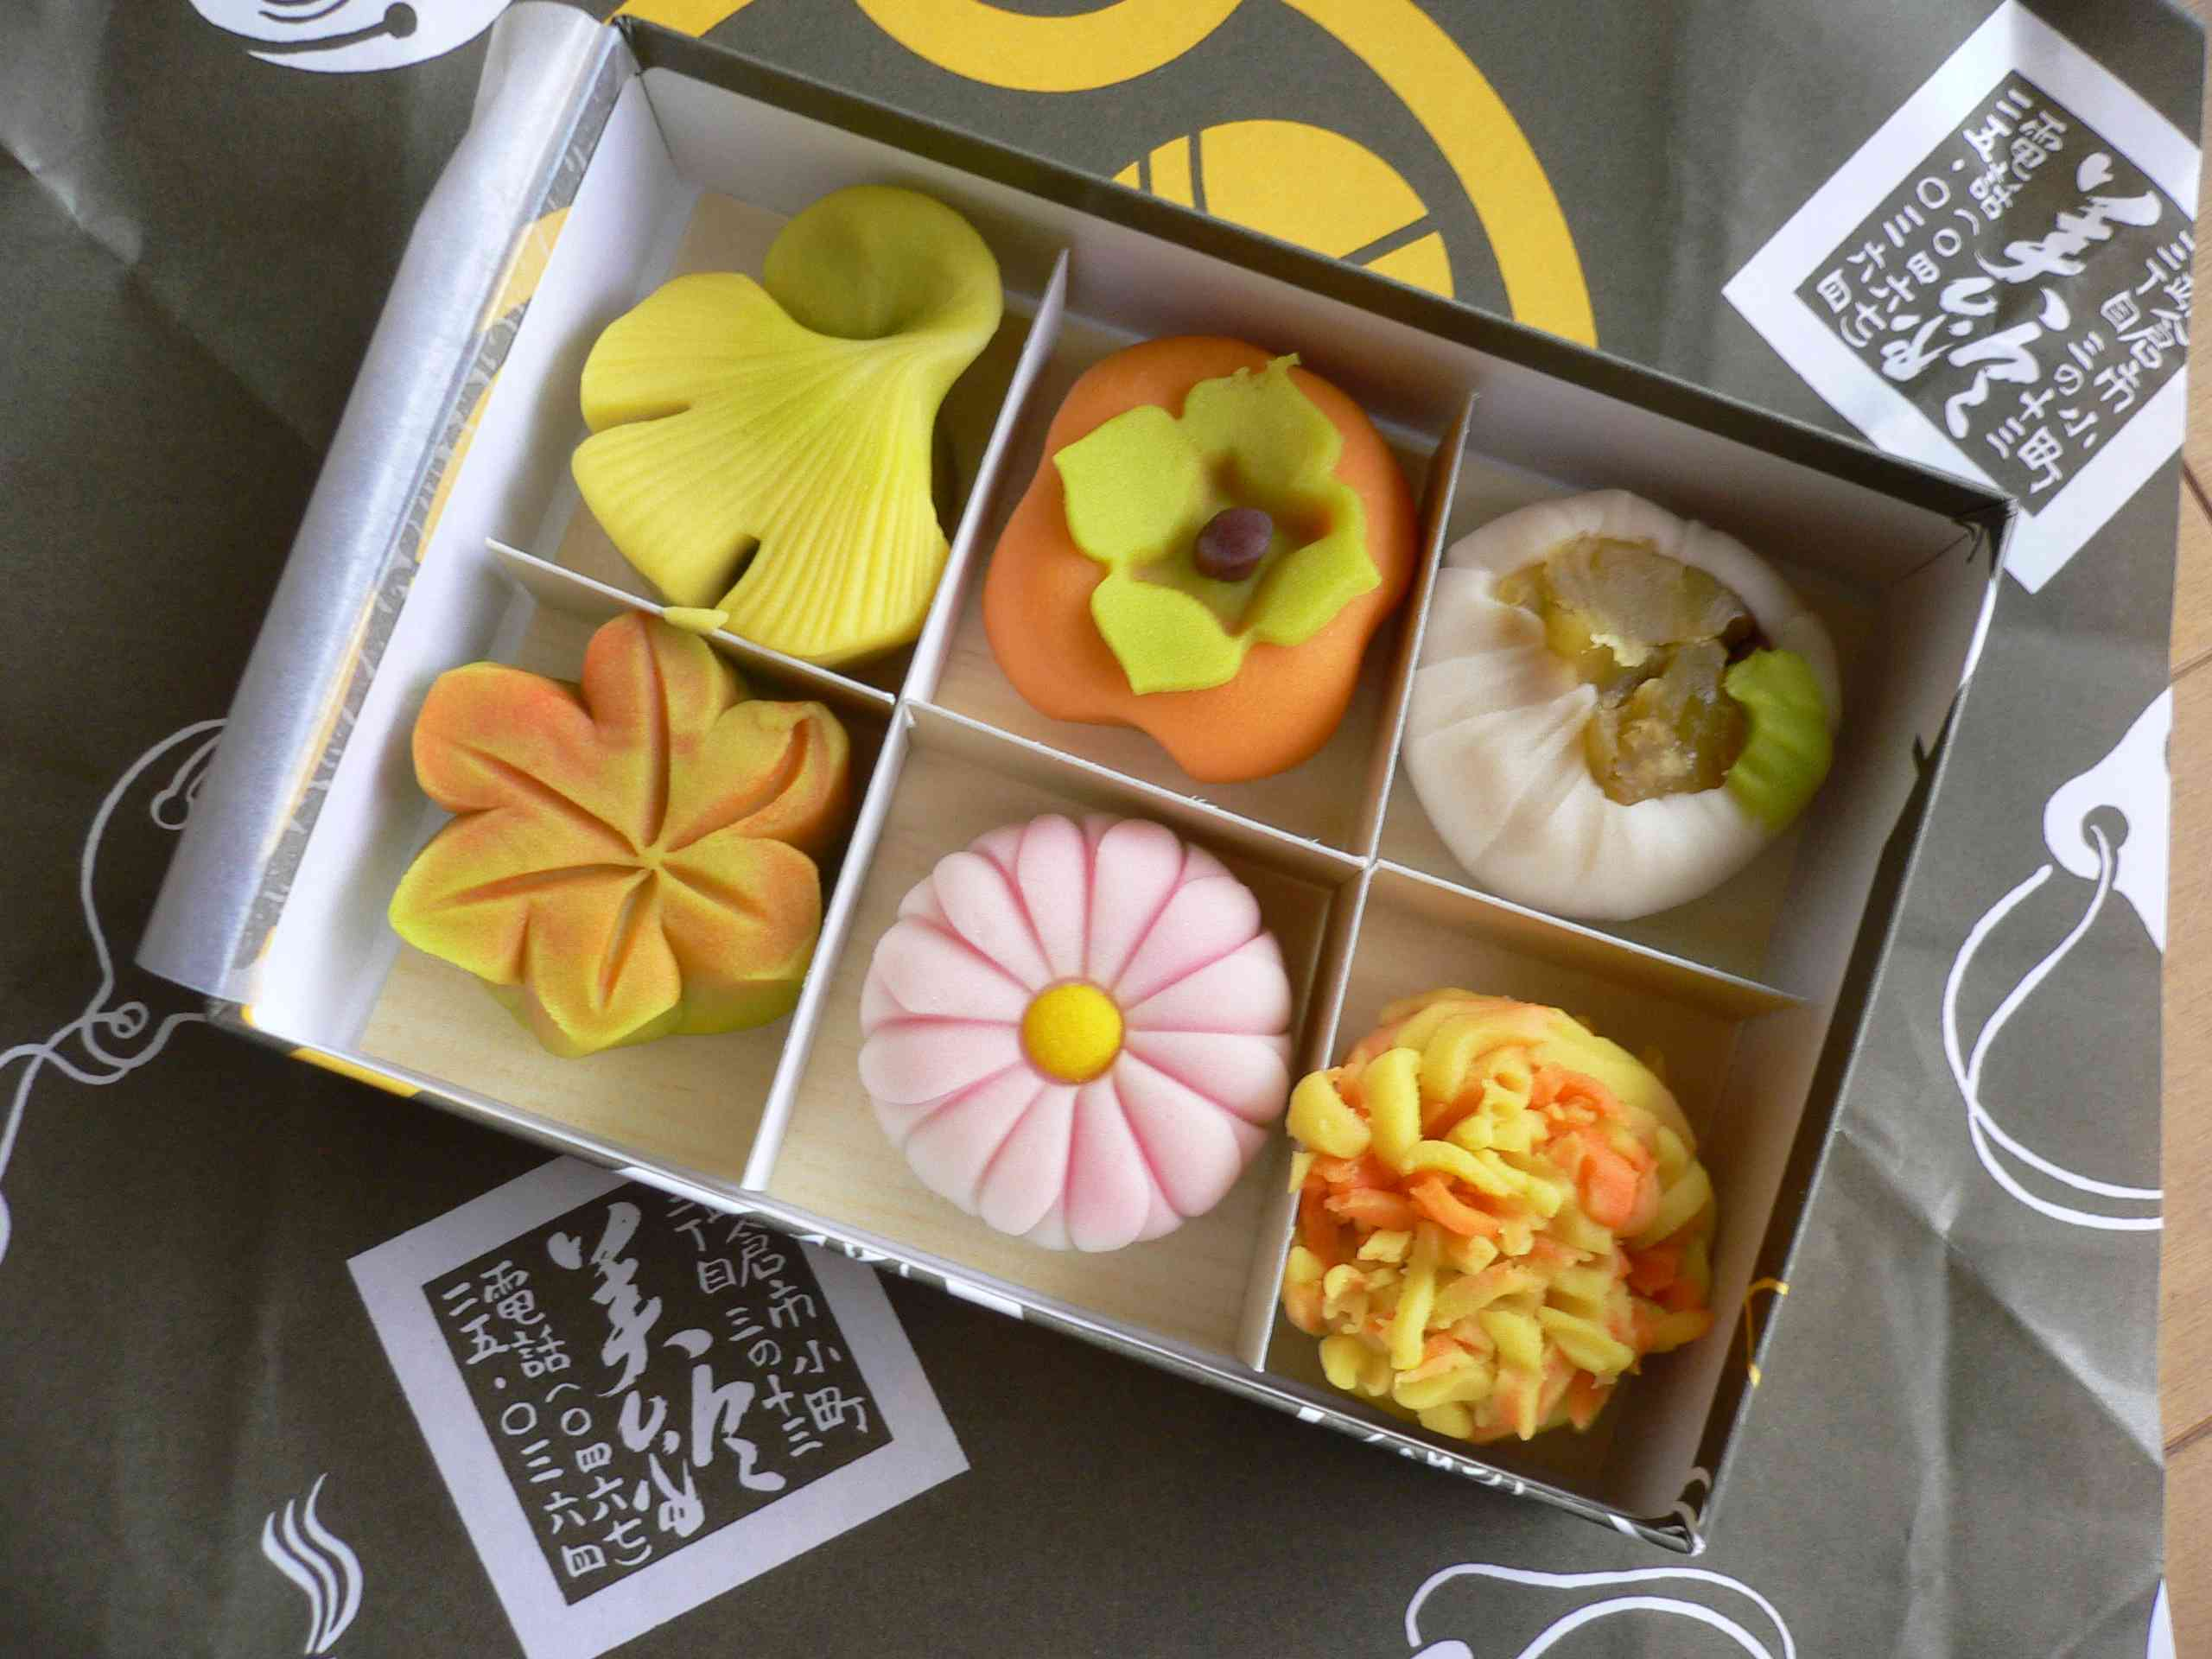 box of six decorative desserts in different shapes like a gingko leaf, flower, and persimmon